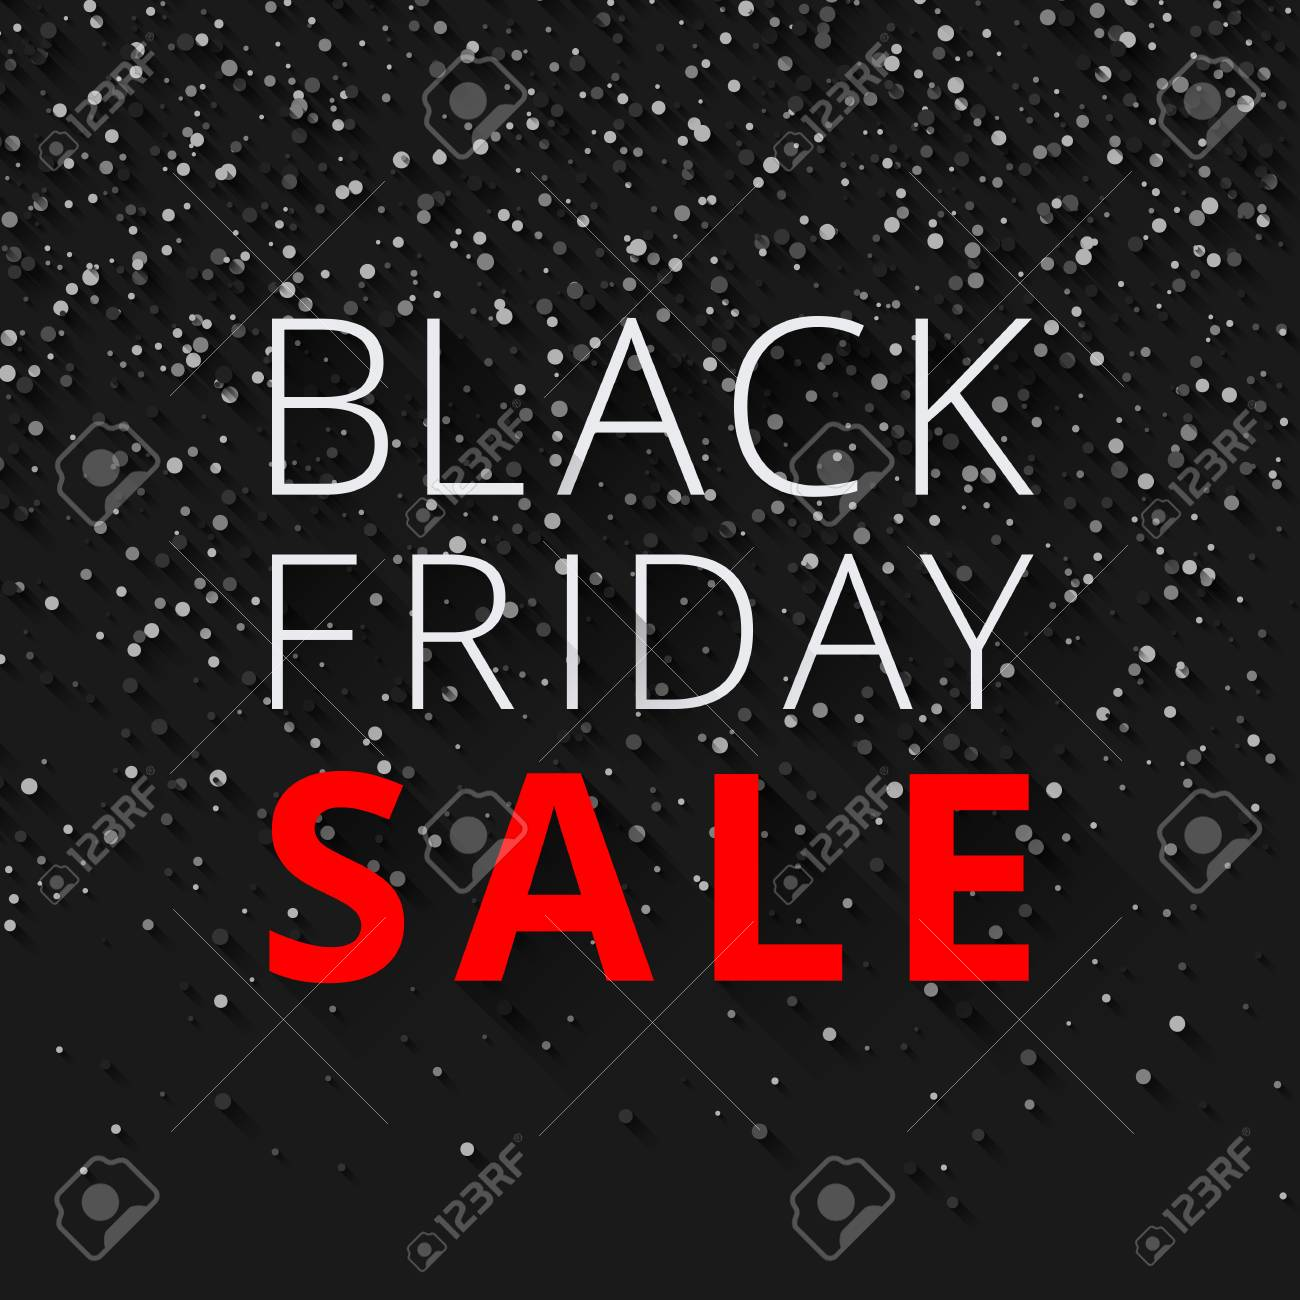 black friday sale background promotion or advertising poster